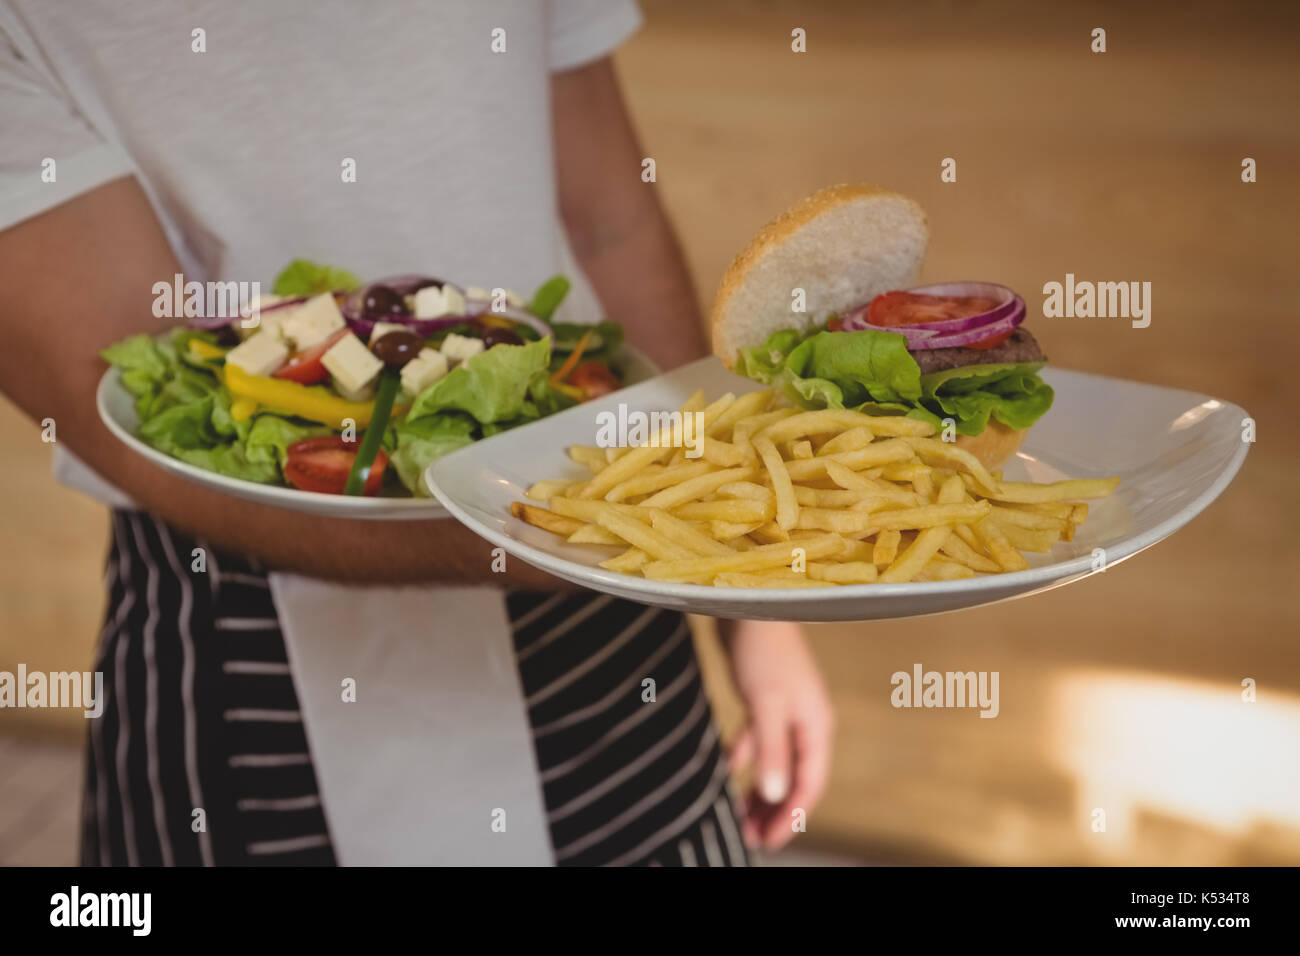 Mid section of waiter holding plates with French fries and salad in cafe - Stock Image